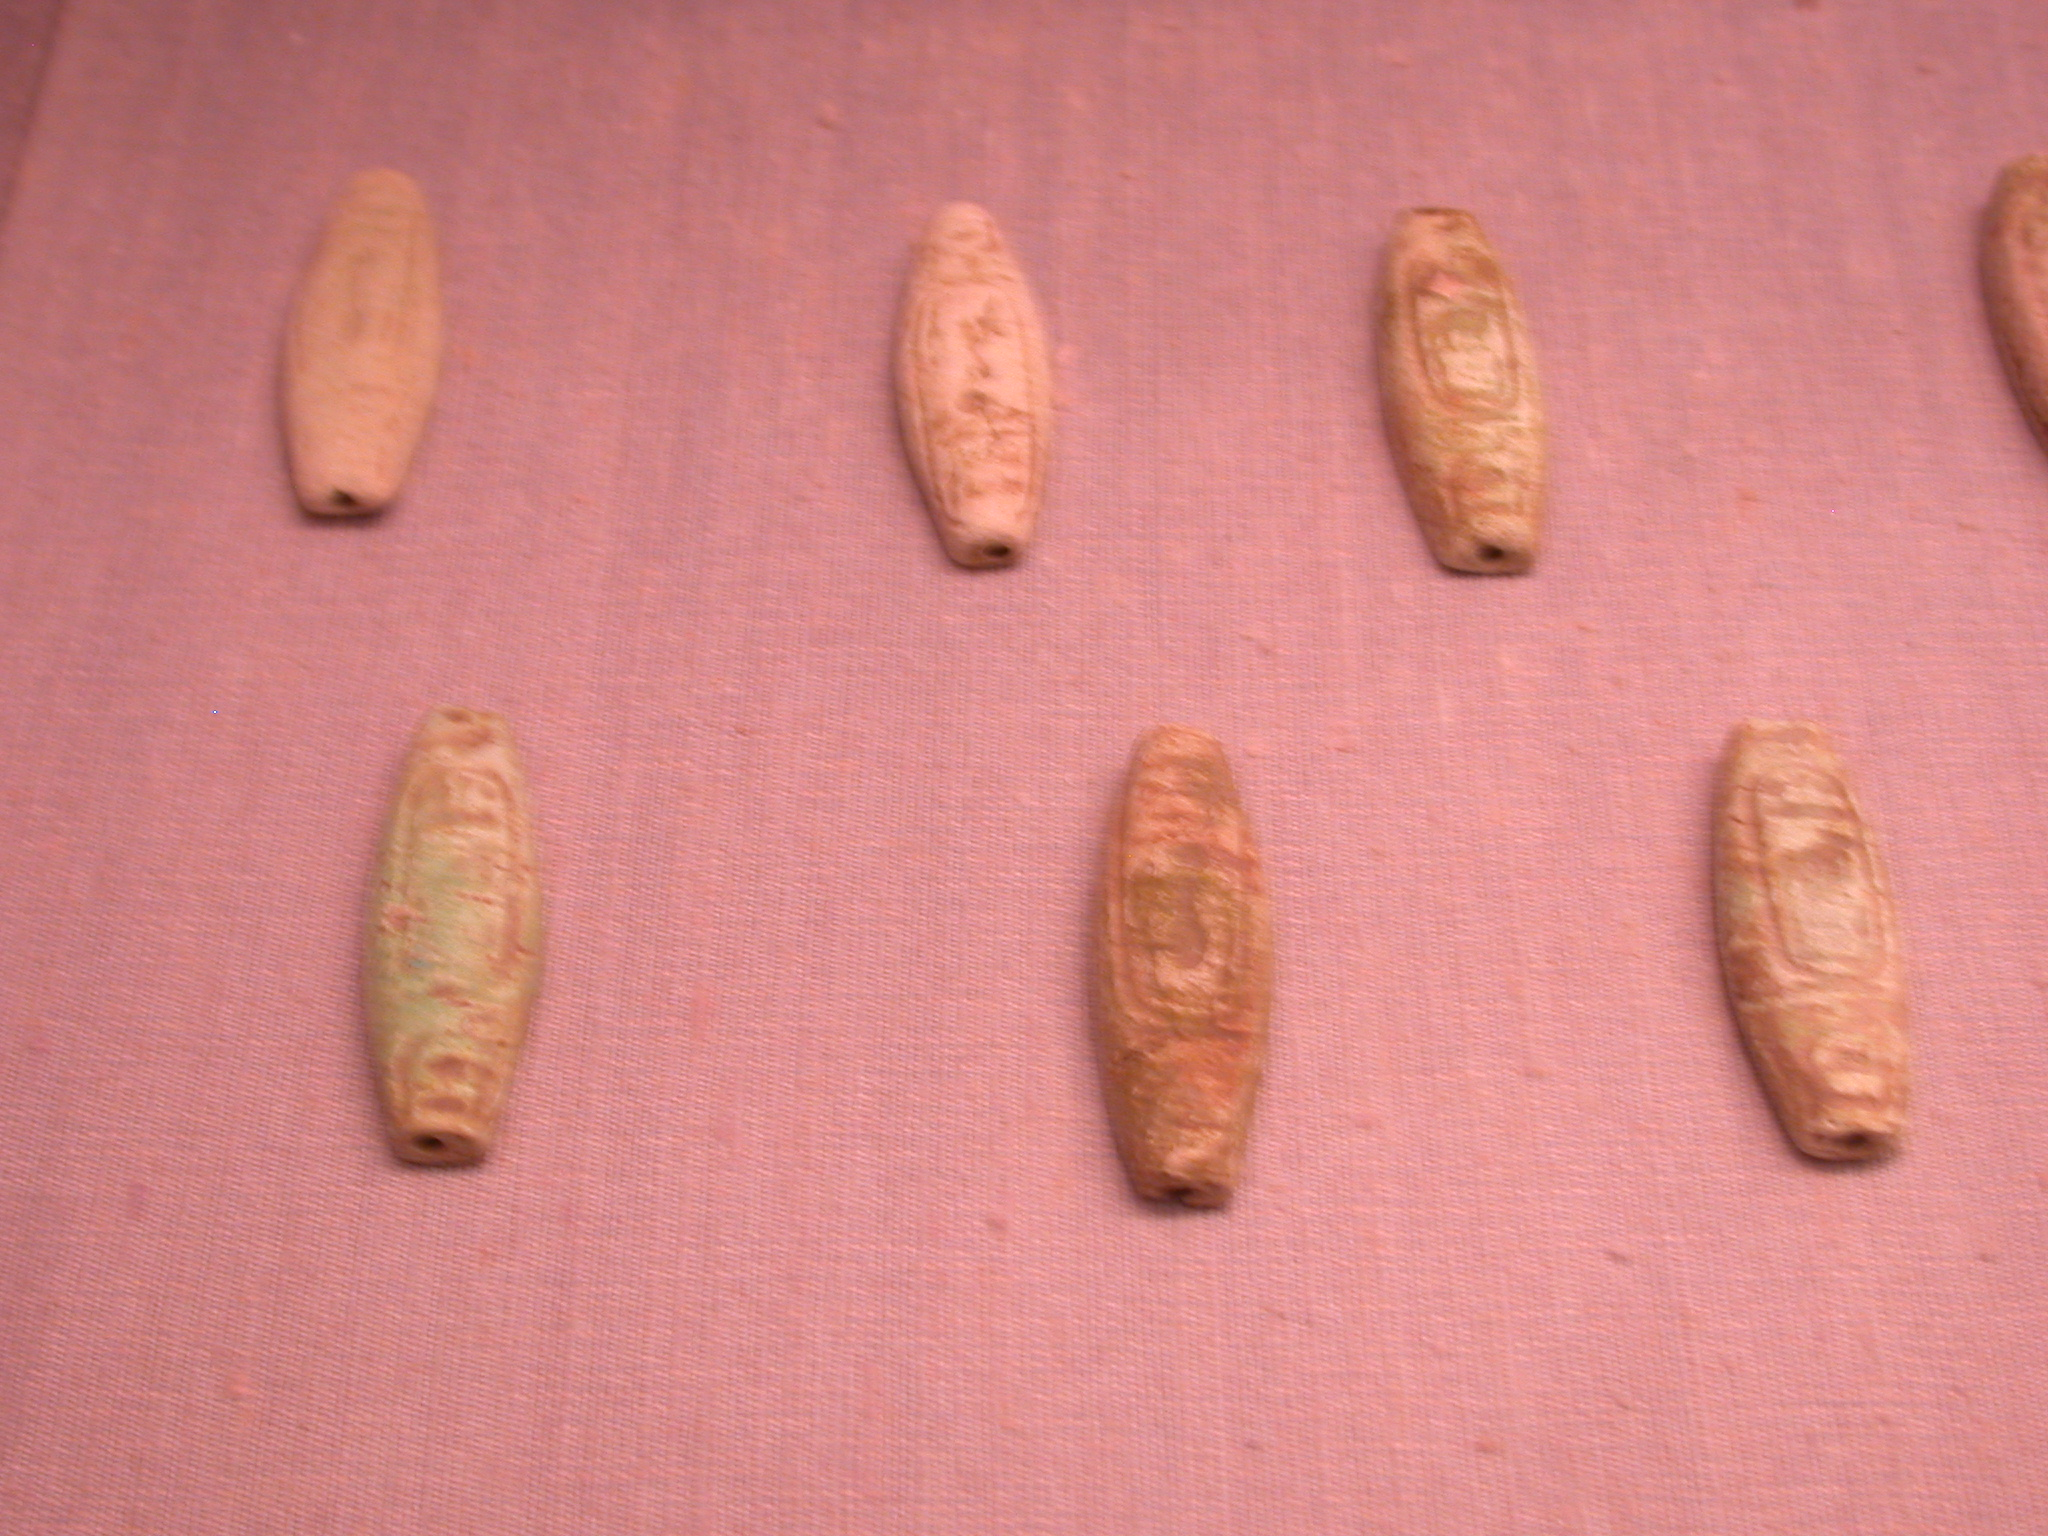 Faience Beads With Cartouches of Rulers, 25th Dynasty Sudan, Fitzwilliam Museum, Cambridge, England